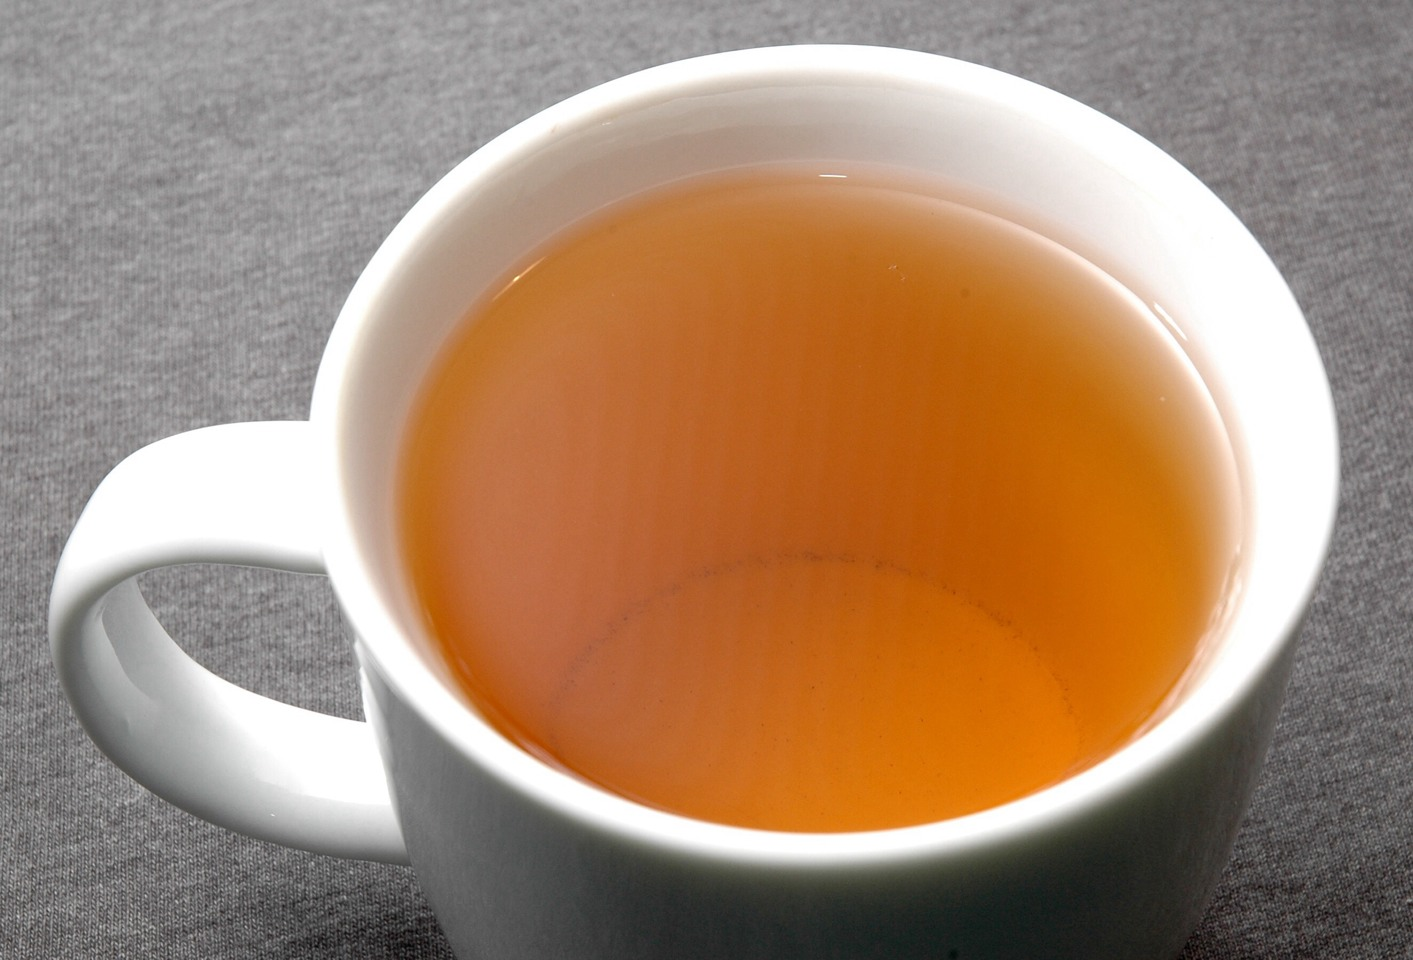 Mix the honey and lemon into a cup of your favourite tea and enjoy and feel your throat feel better!